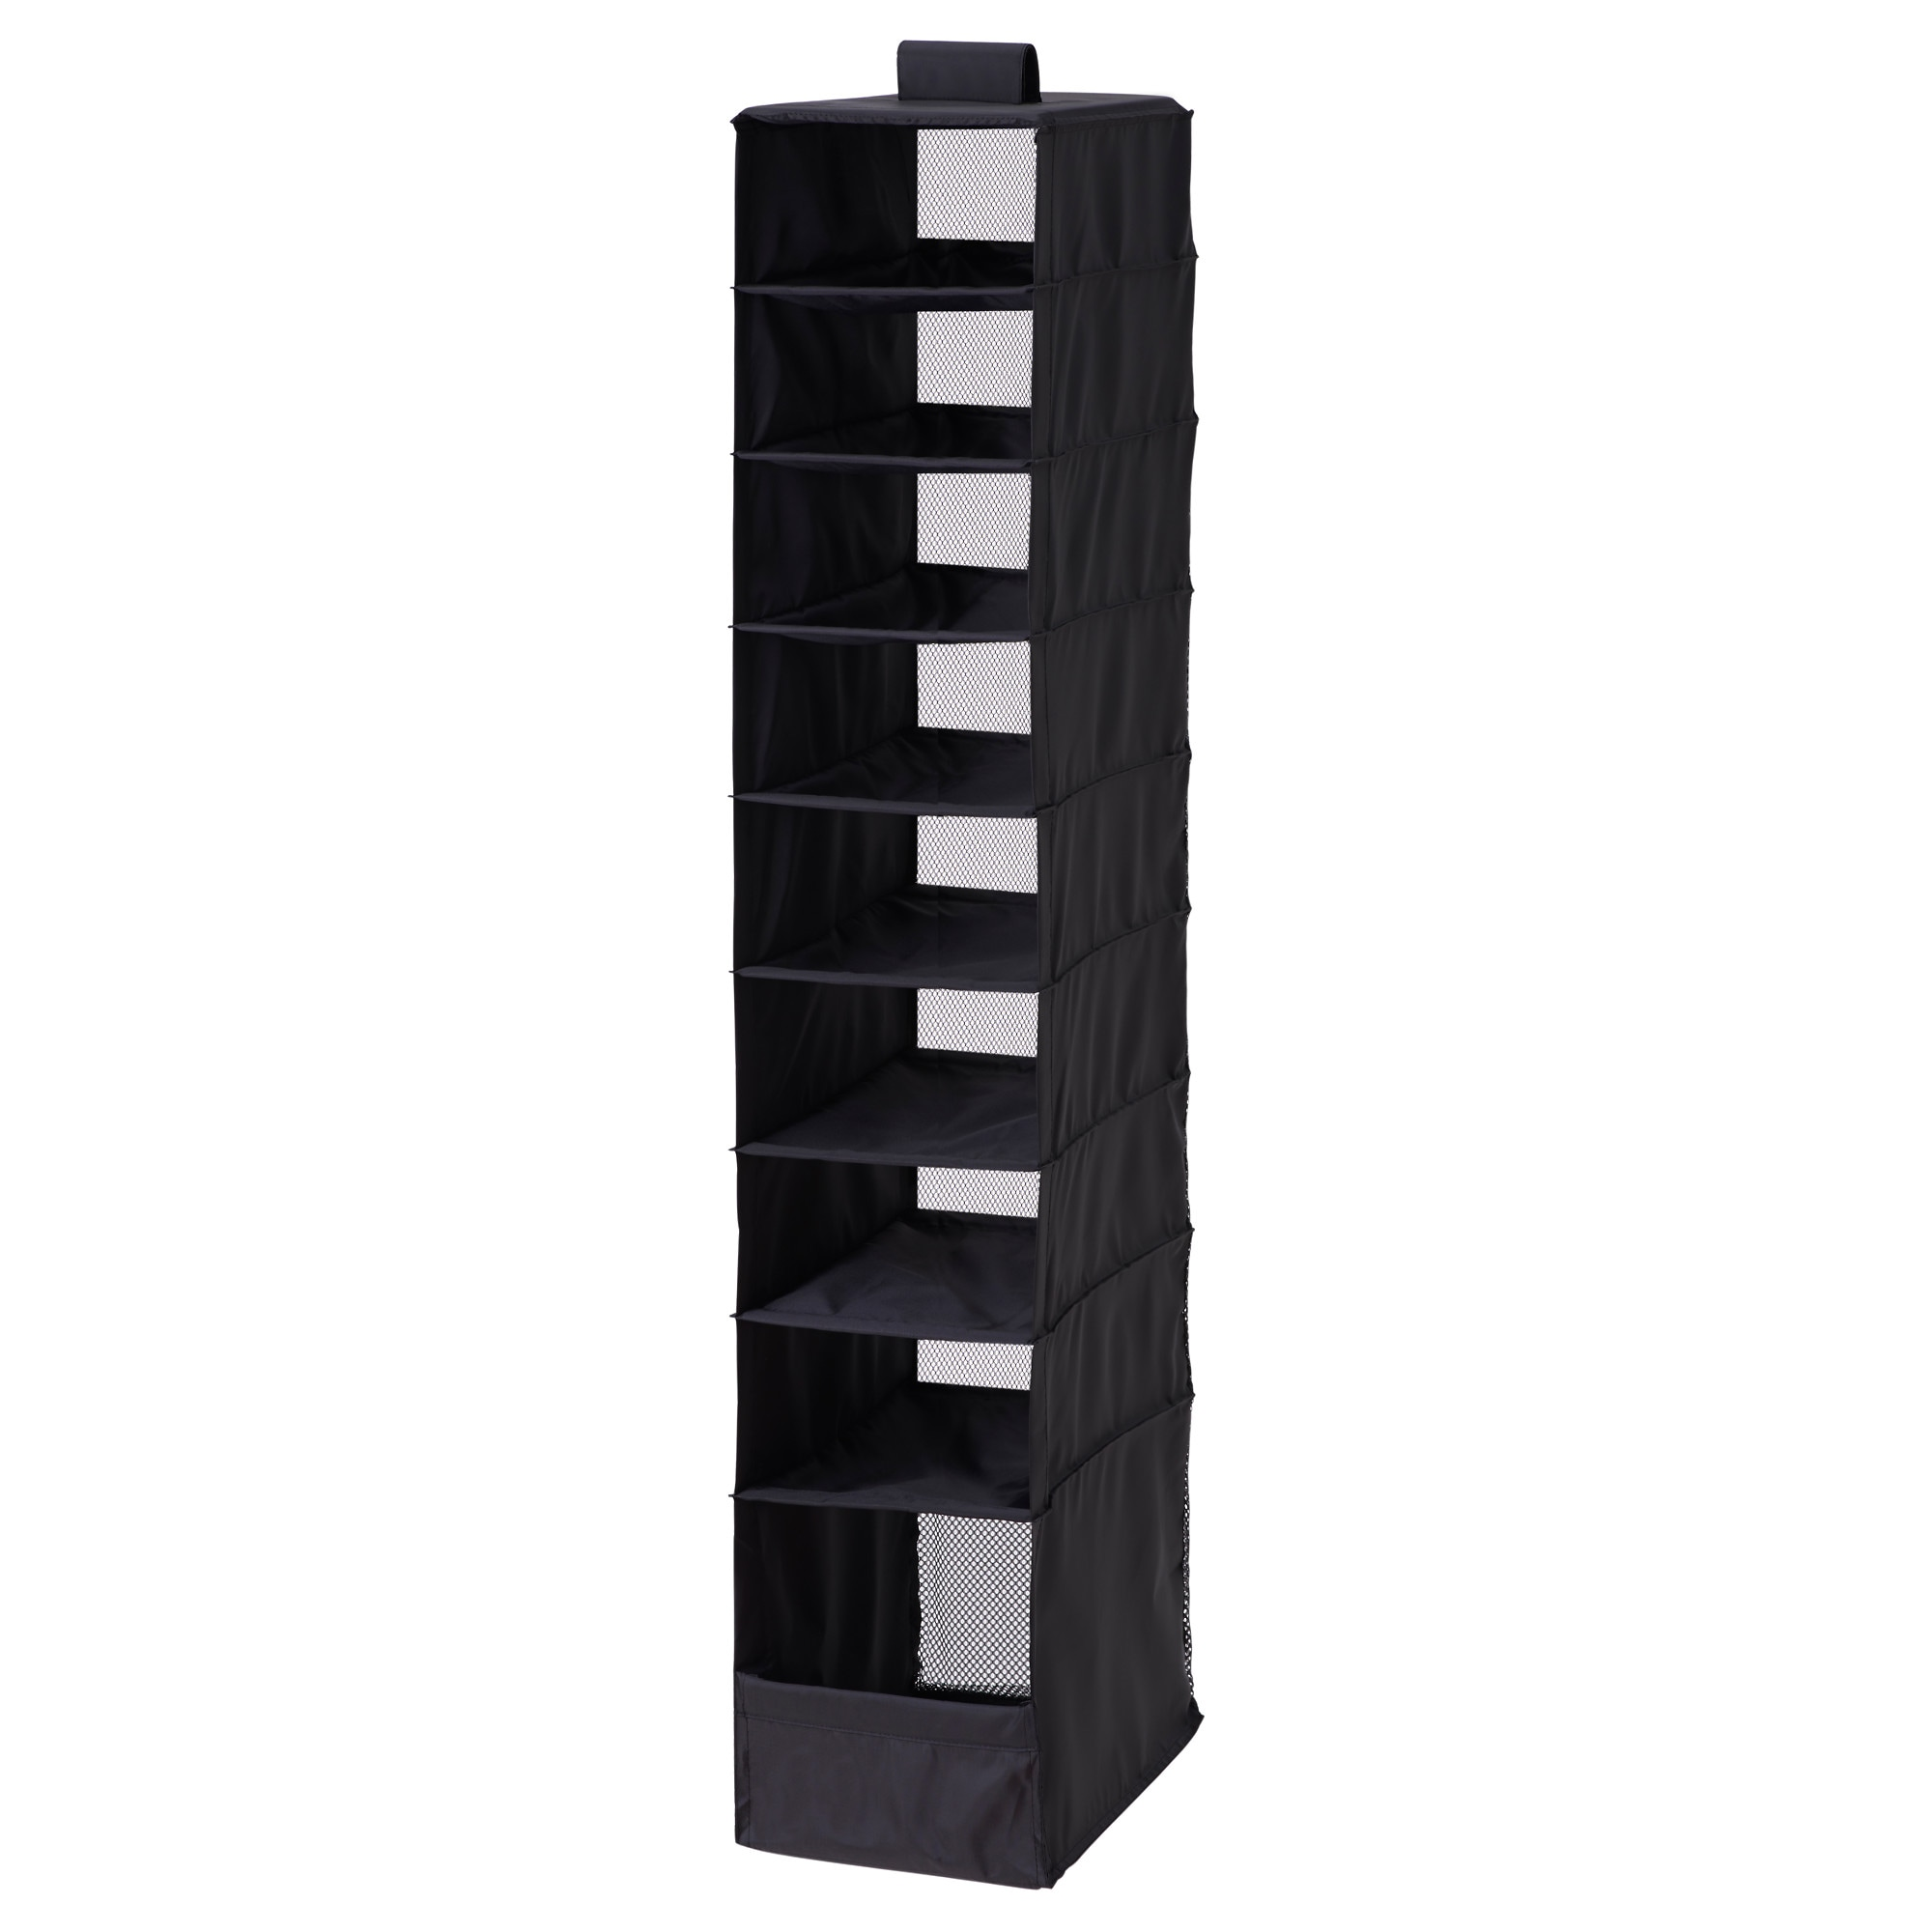 Skubb Organizer With 9 Compartments Black